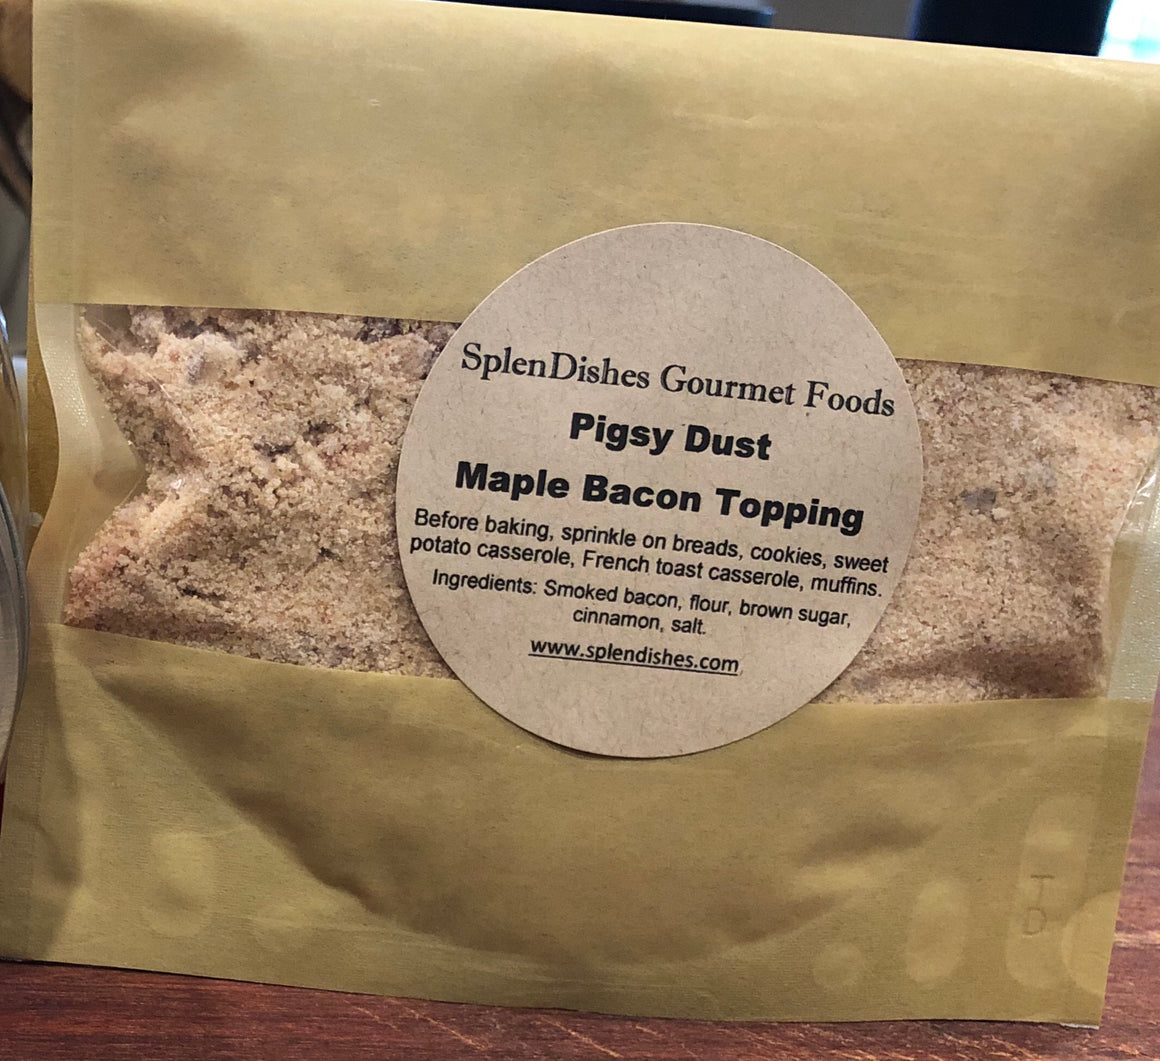 Pigsy Dust Maple Bacon Topping